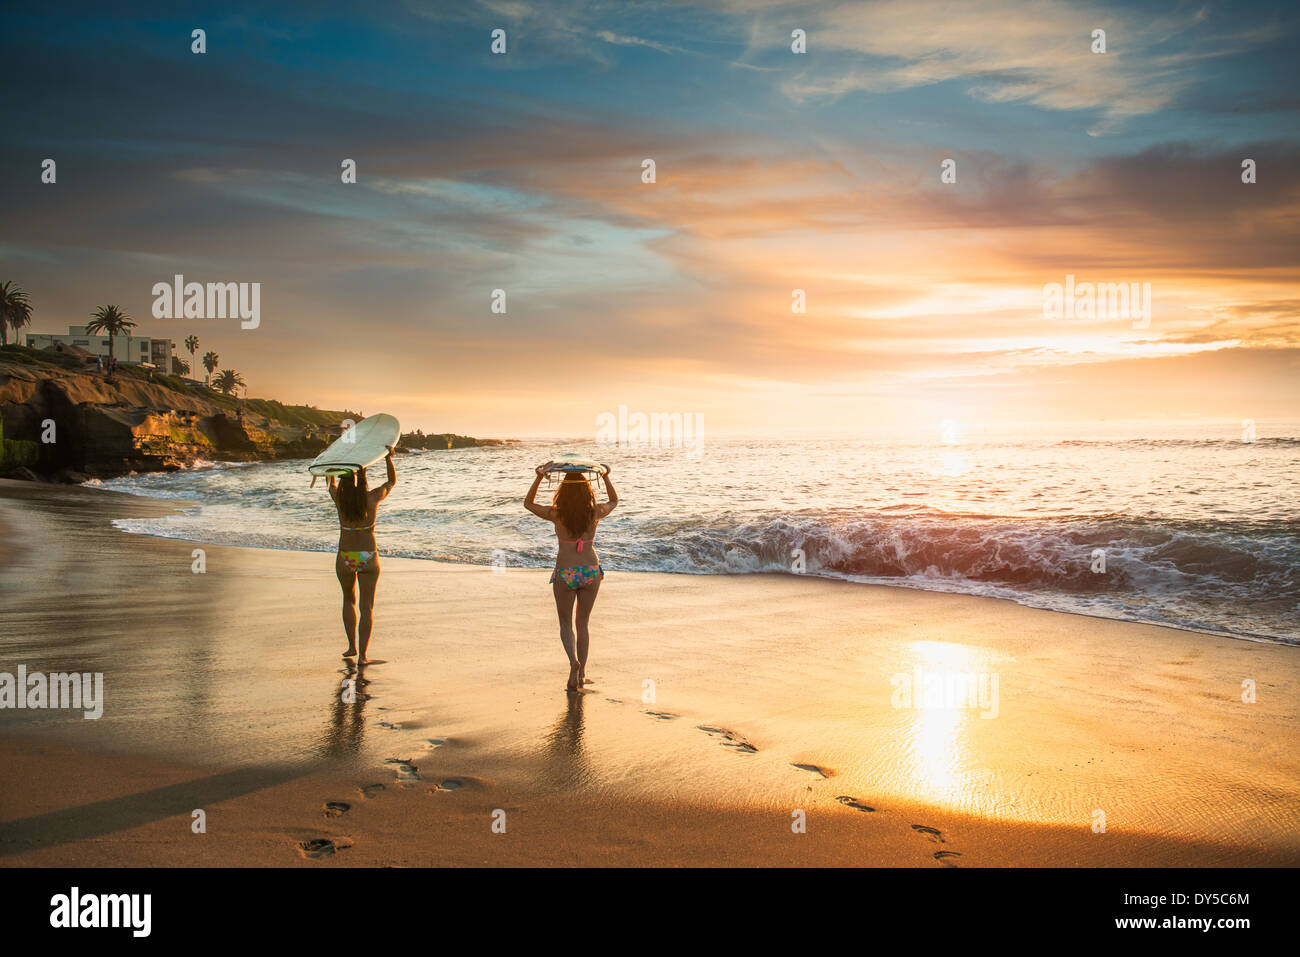 Surfers carrying surf board, walking along beach - Stock Image